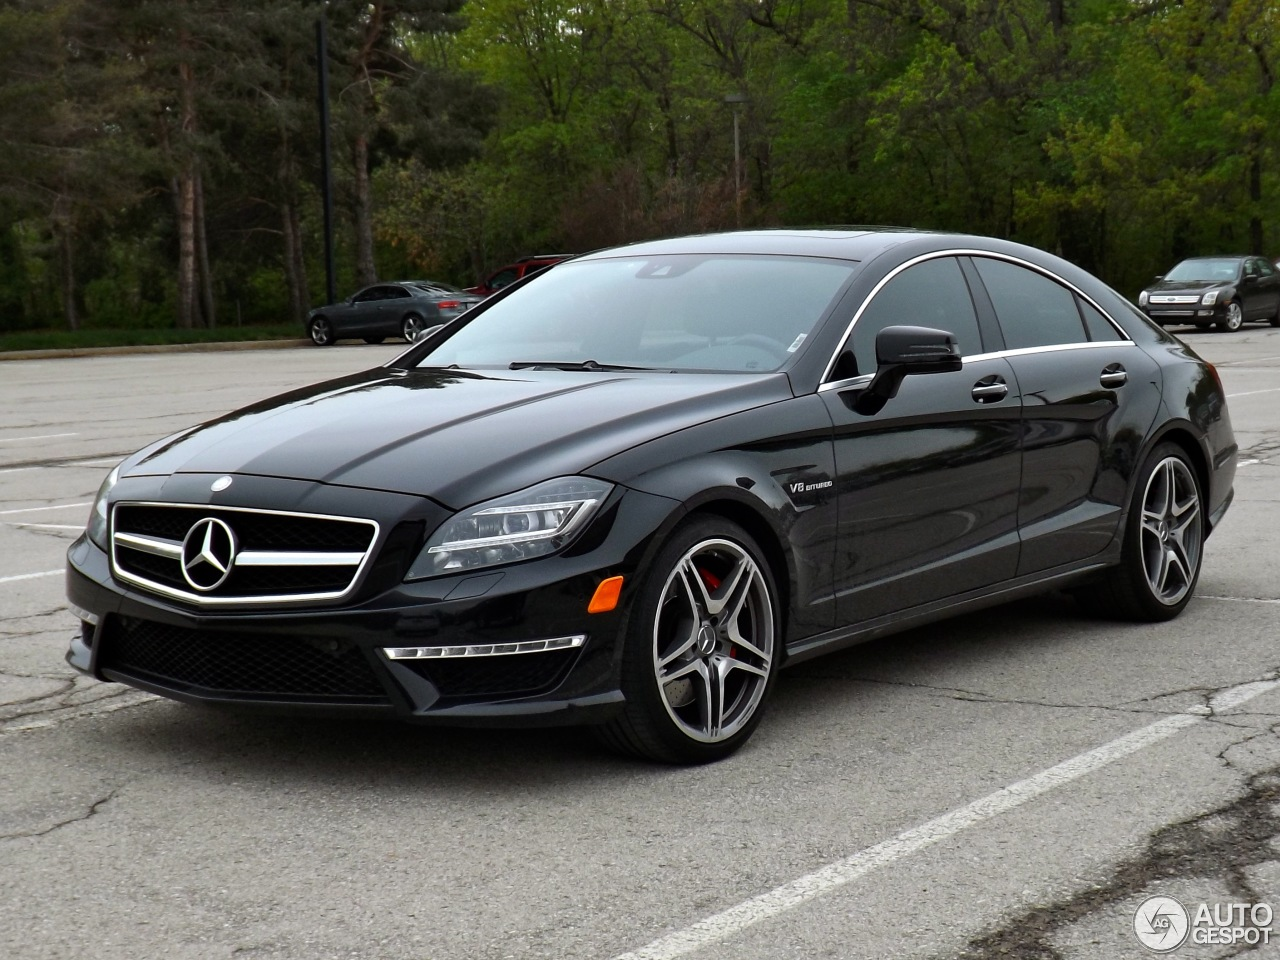 Mercedes benz cls 63 amg c218 11 may 2013 autogespot for 2013 mercedes benz cls 63 amg